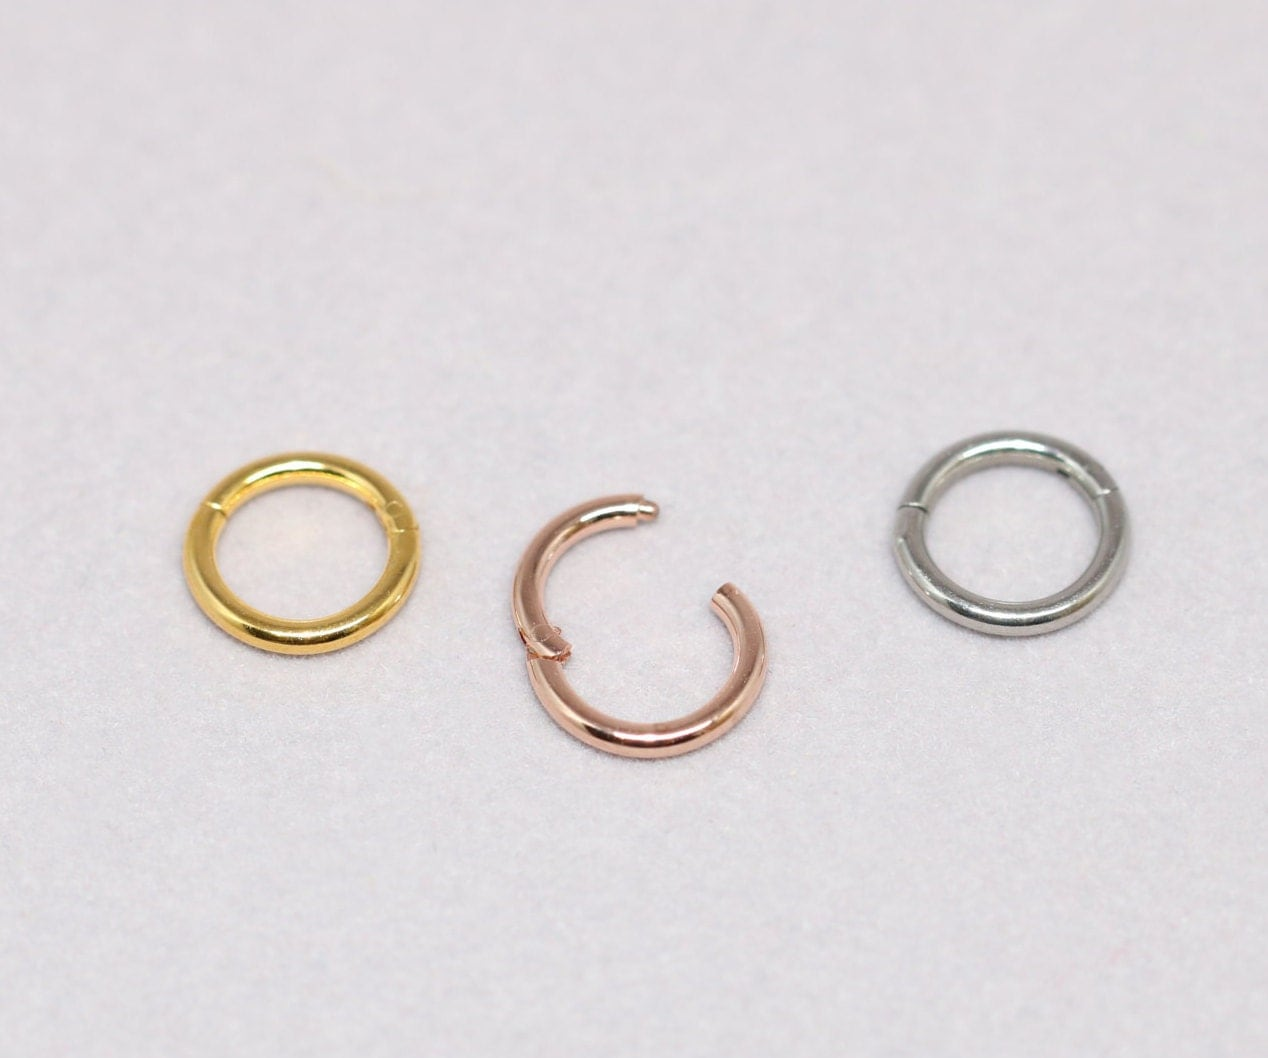 Cartilage Ring, Endless Hoop, 16g Cartilage Hoop Earring, Segment Ring,  Hinged Hoop